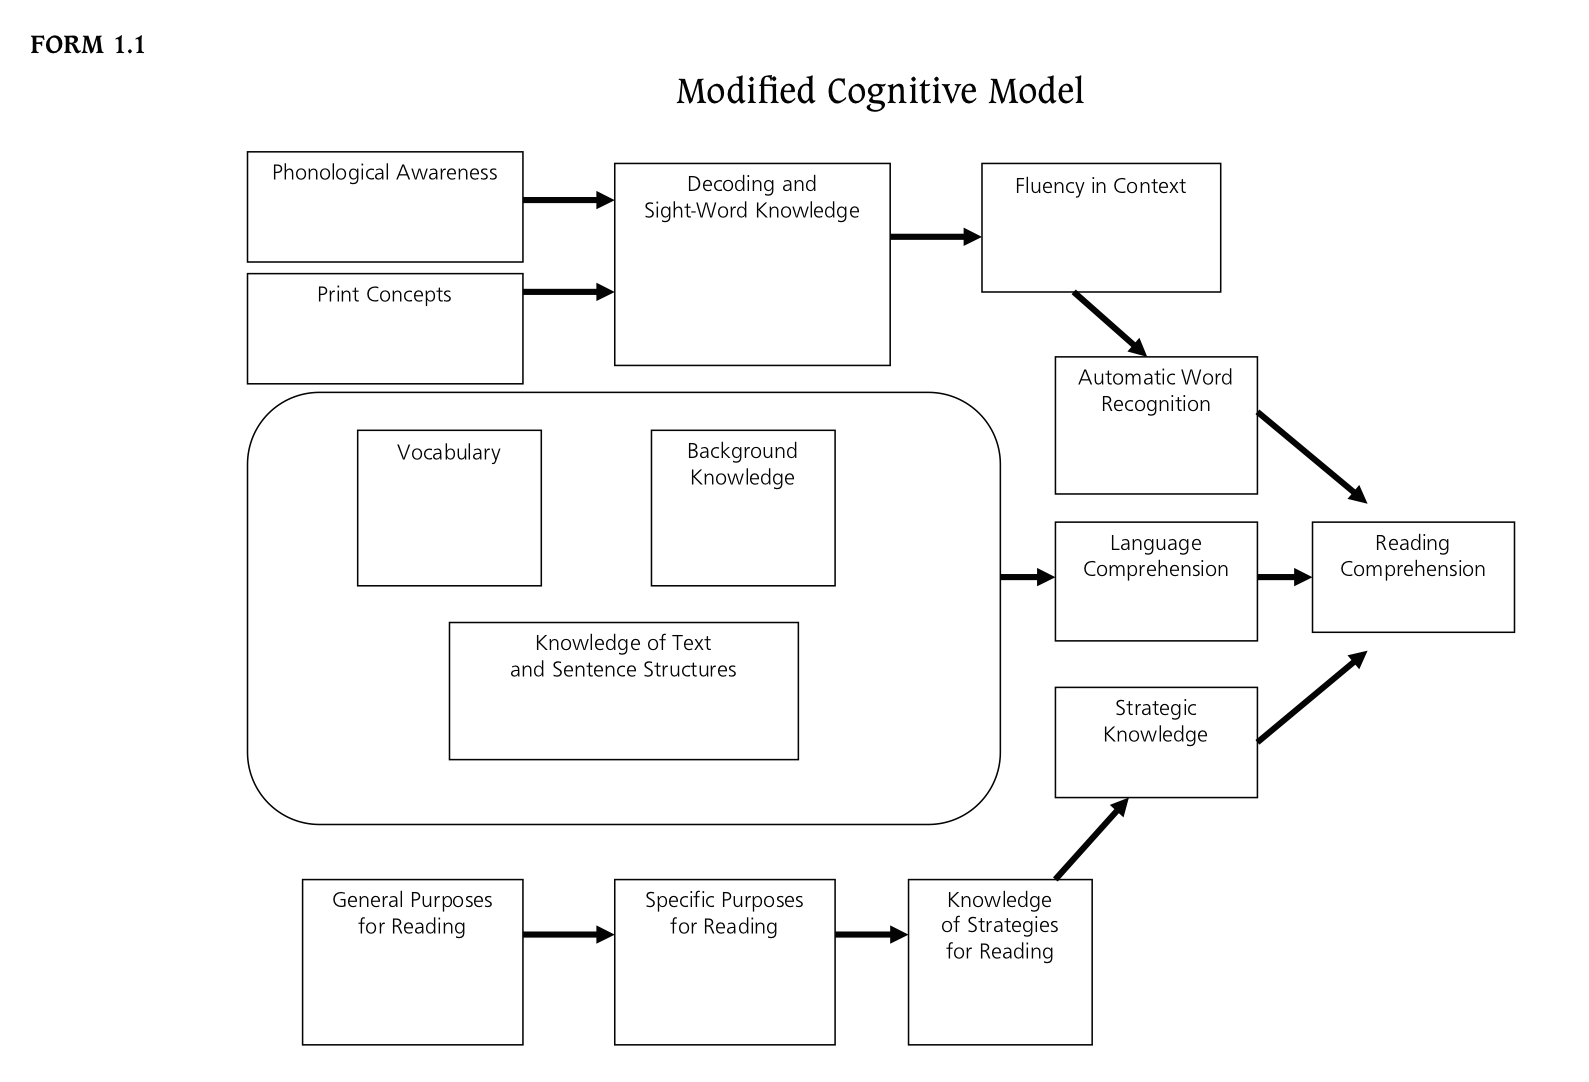 Cognitive Model of the Components for Effective Reading